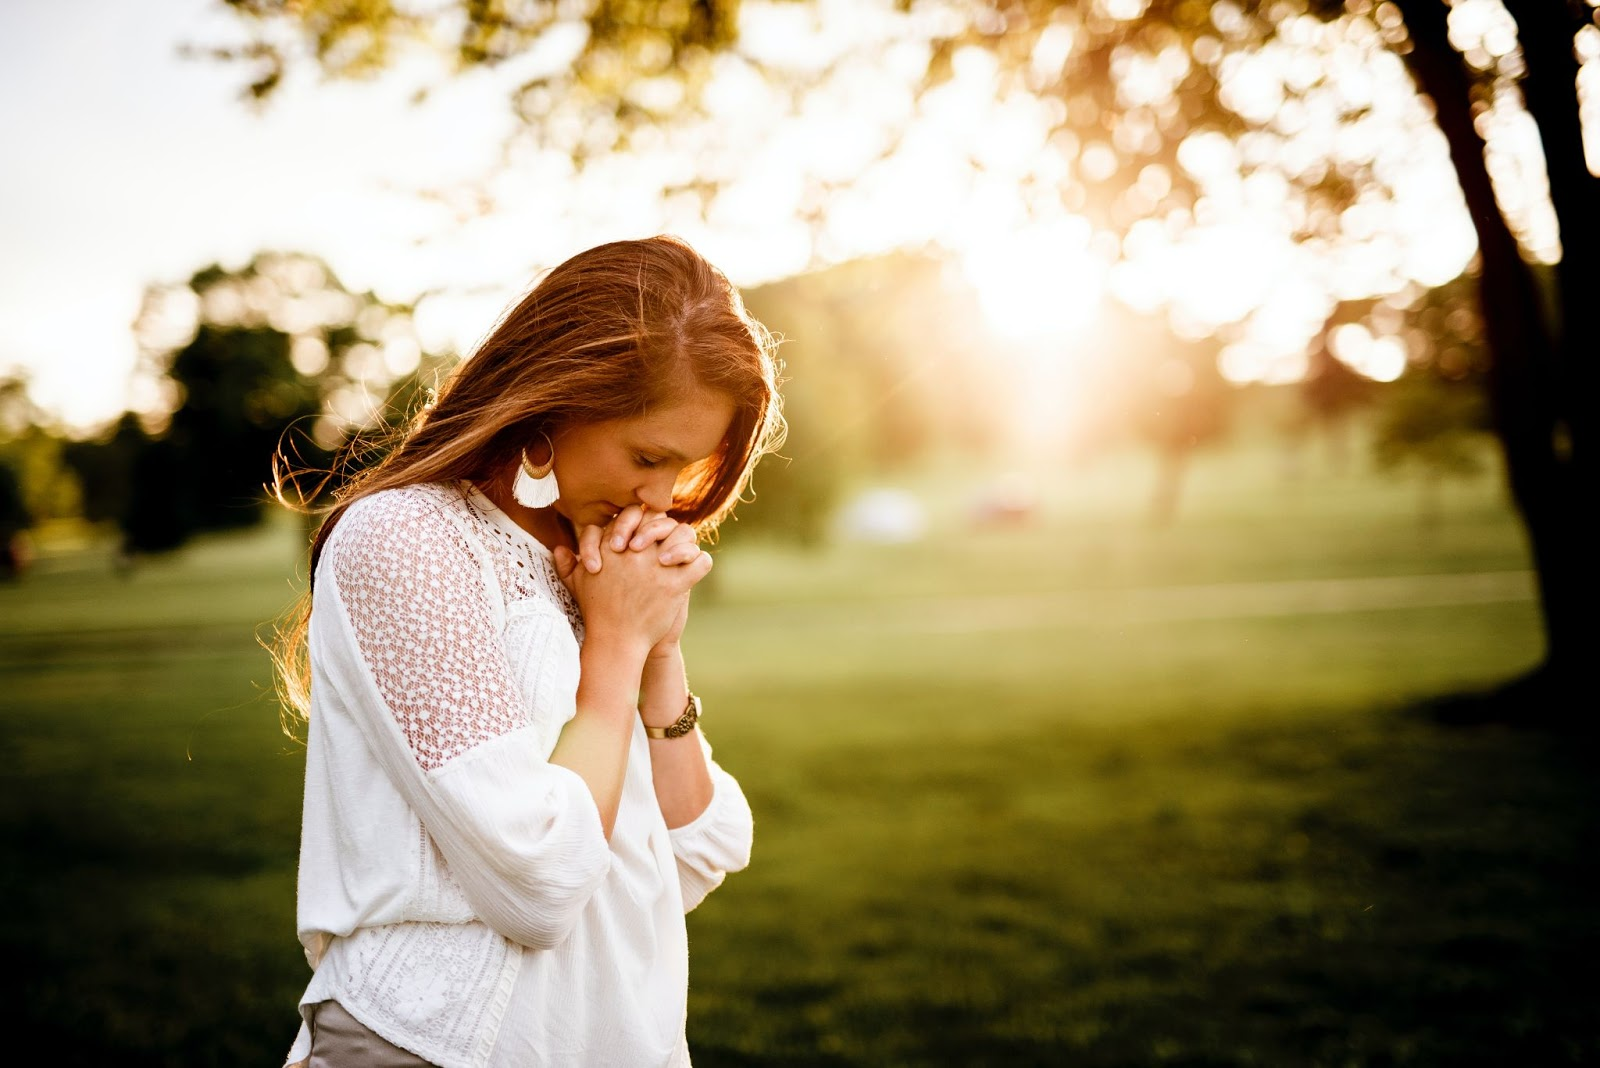 Woman praying outside with her head bowed